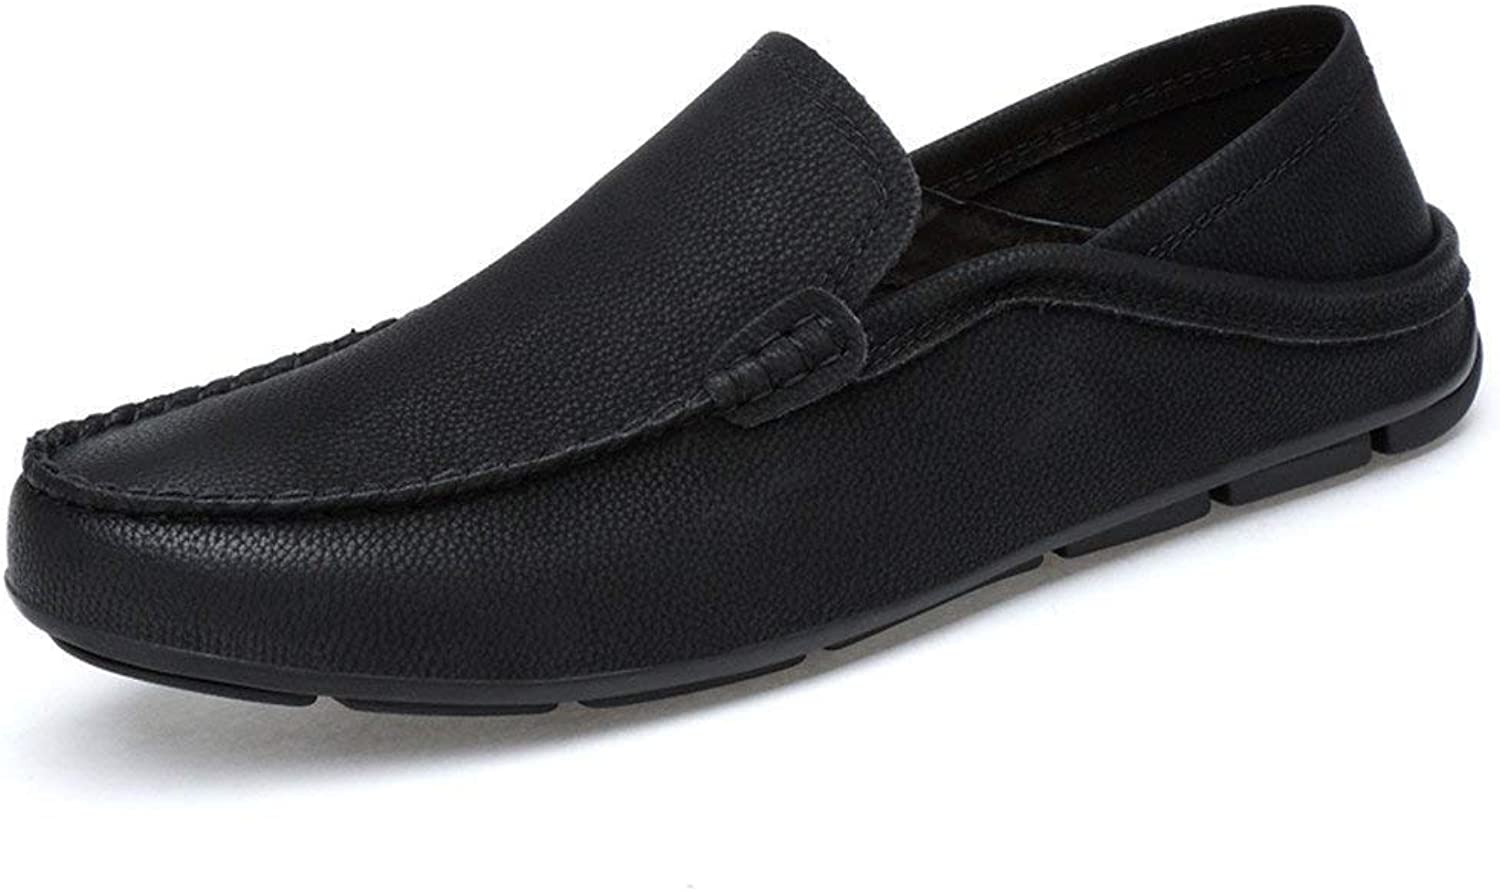 Men's Moccasins shoes, Mens Drive Loafers for Casual and Refreshing Breathable Real Leather Lined Lightweight Boot Moccasins (color  Hollow Black, Size  37 EU) ( color   As shown , Size   One size )